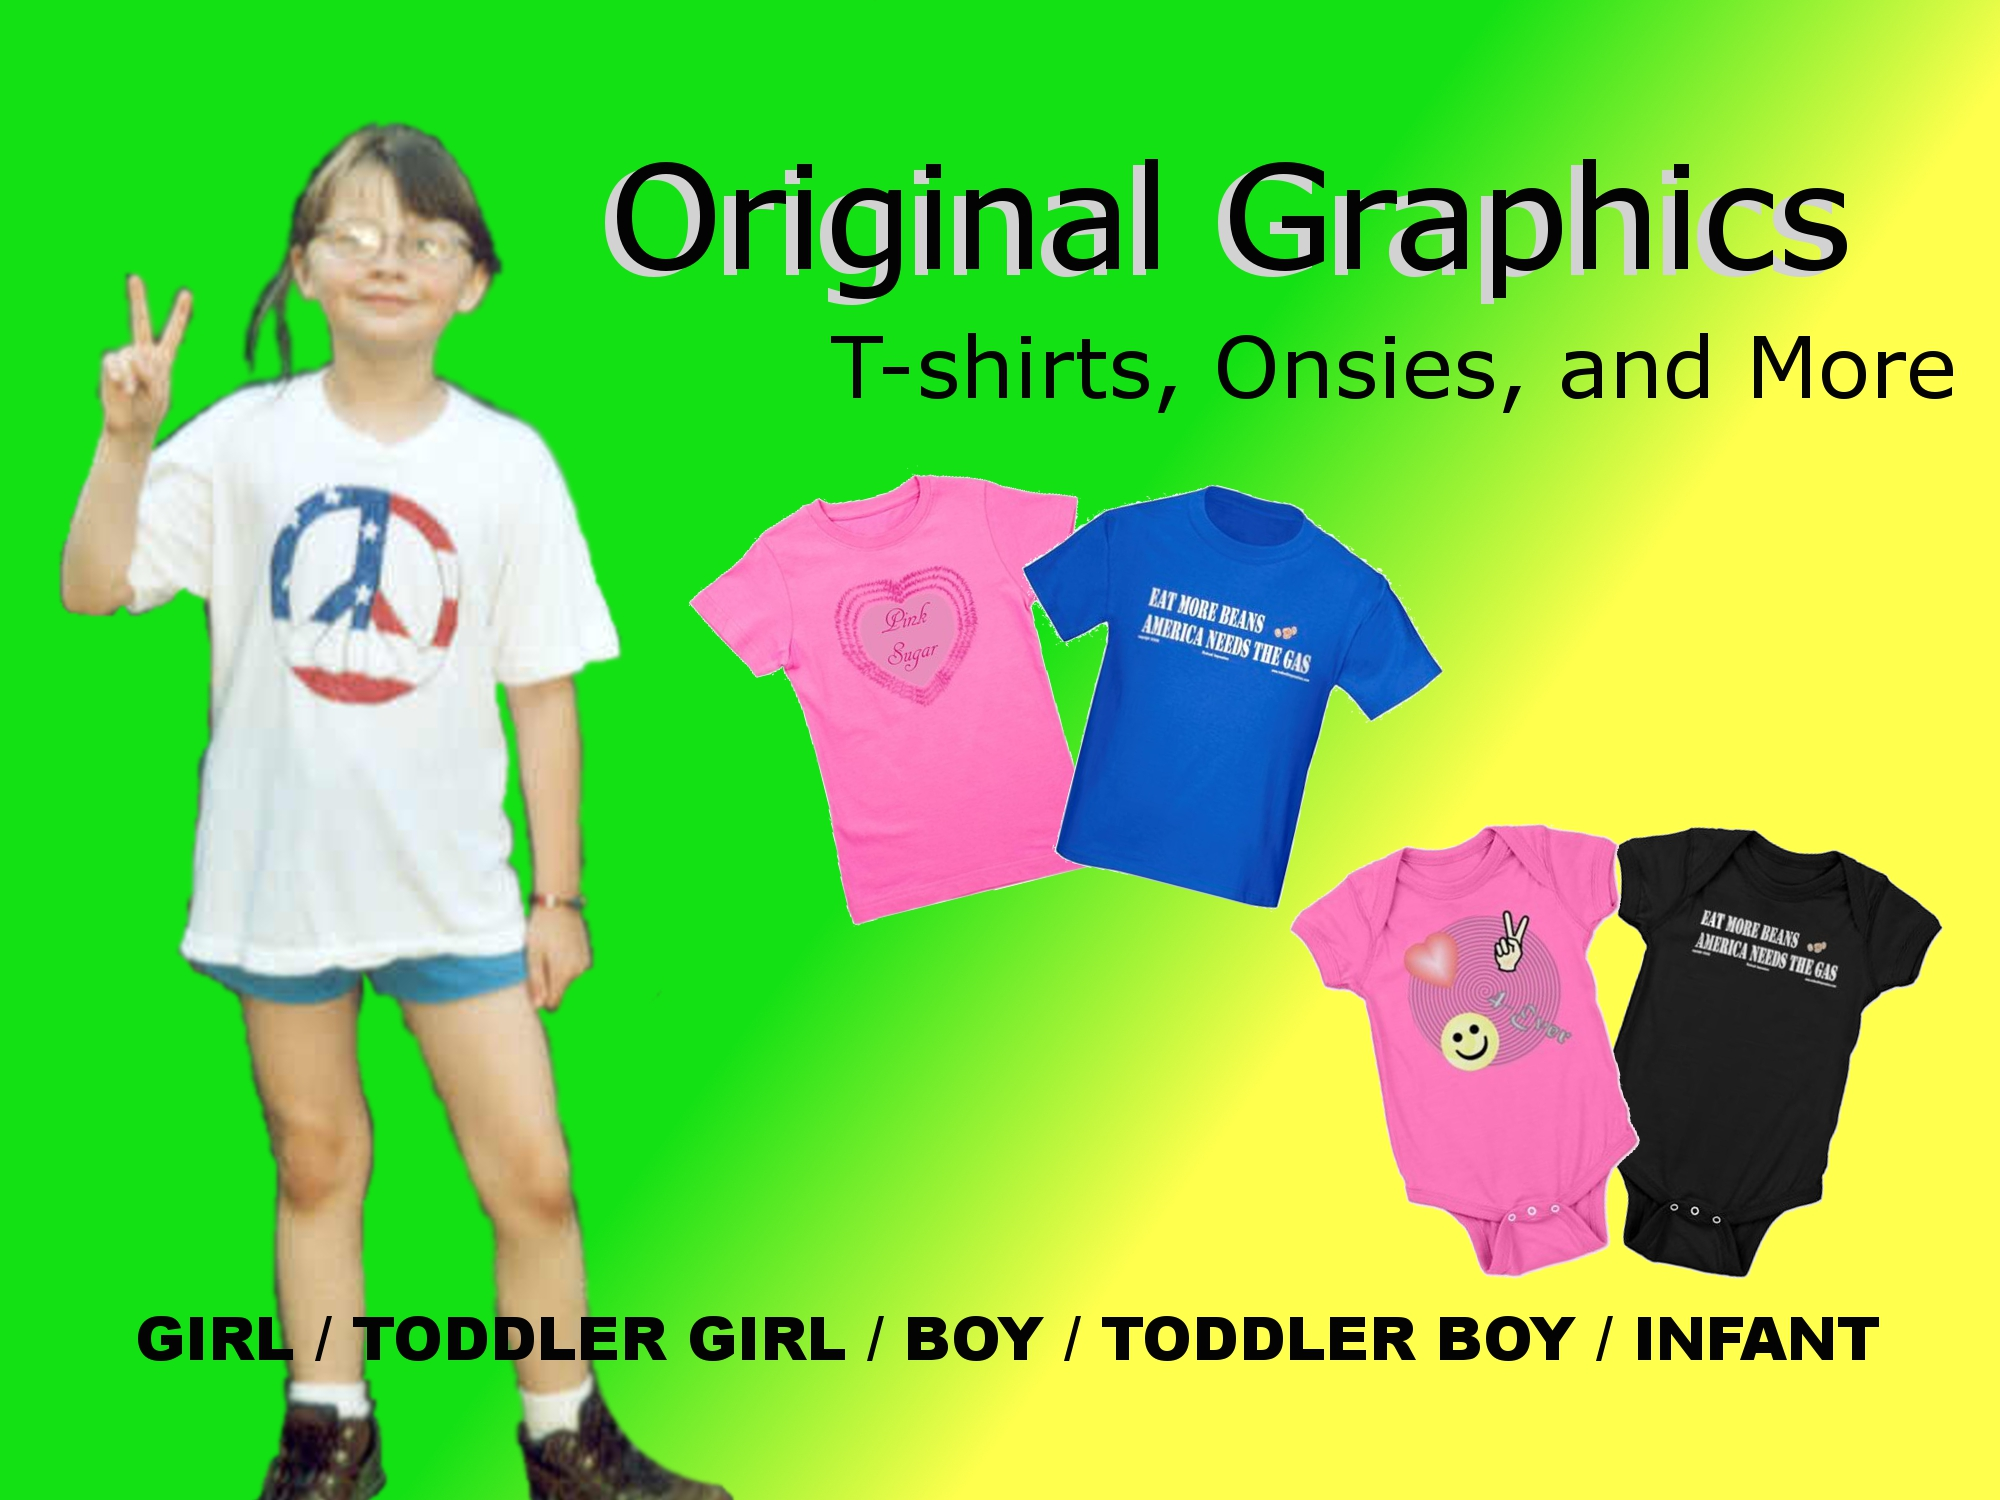 Introducing the new Rosebud Children's Fashions by Gothique Rose Apparel